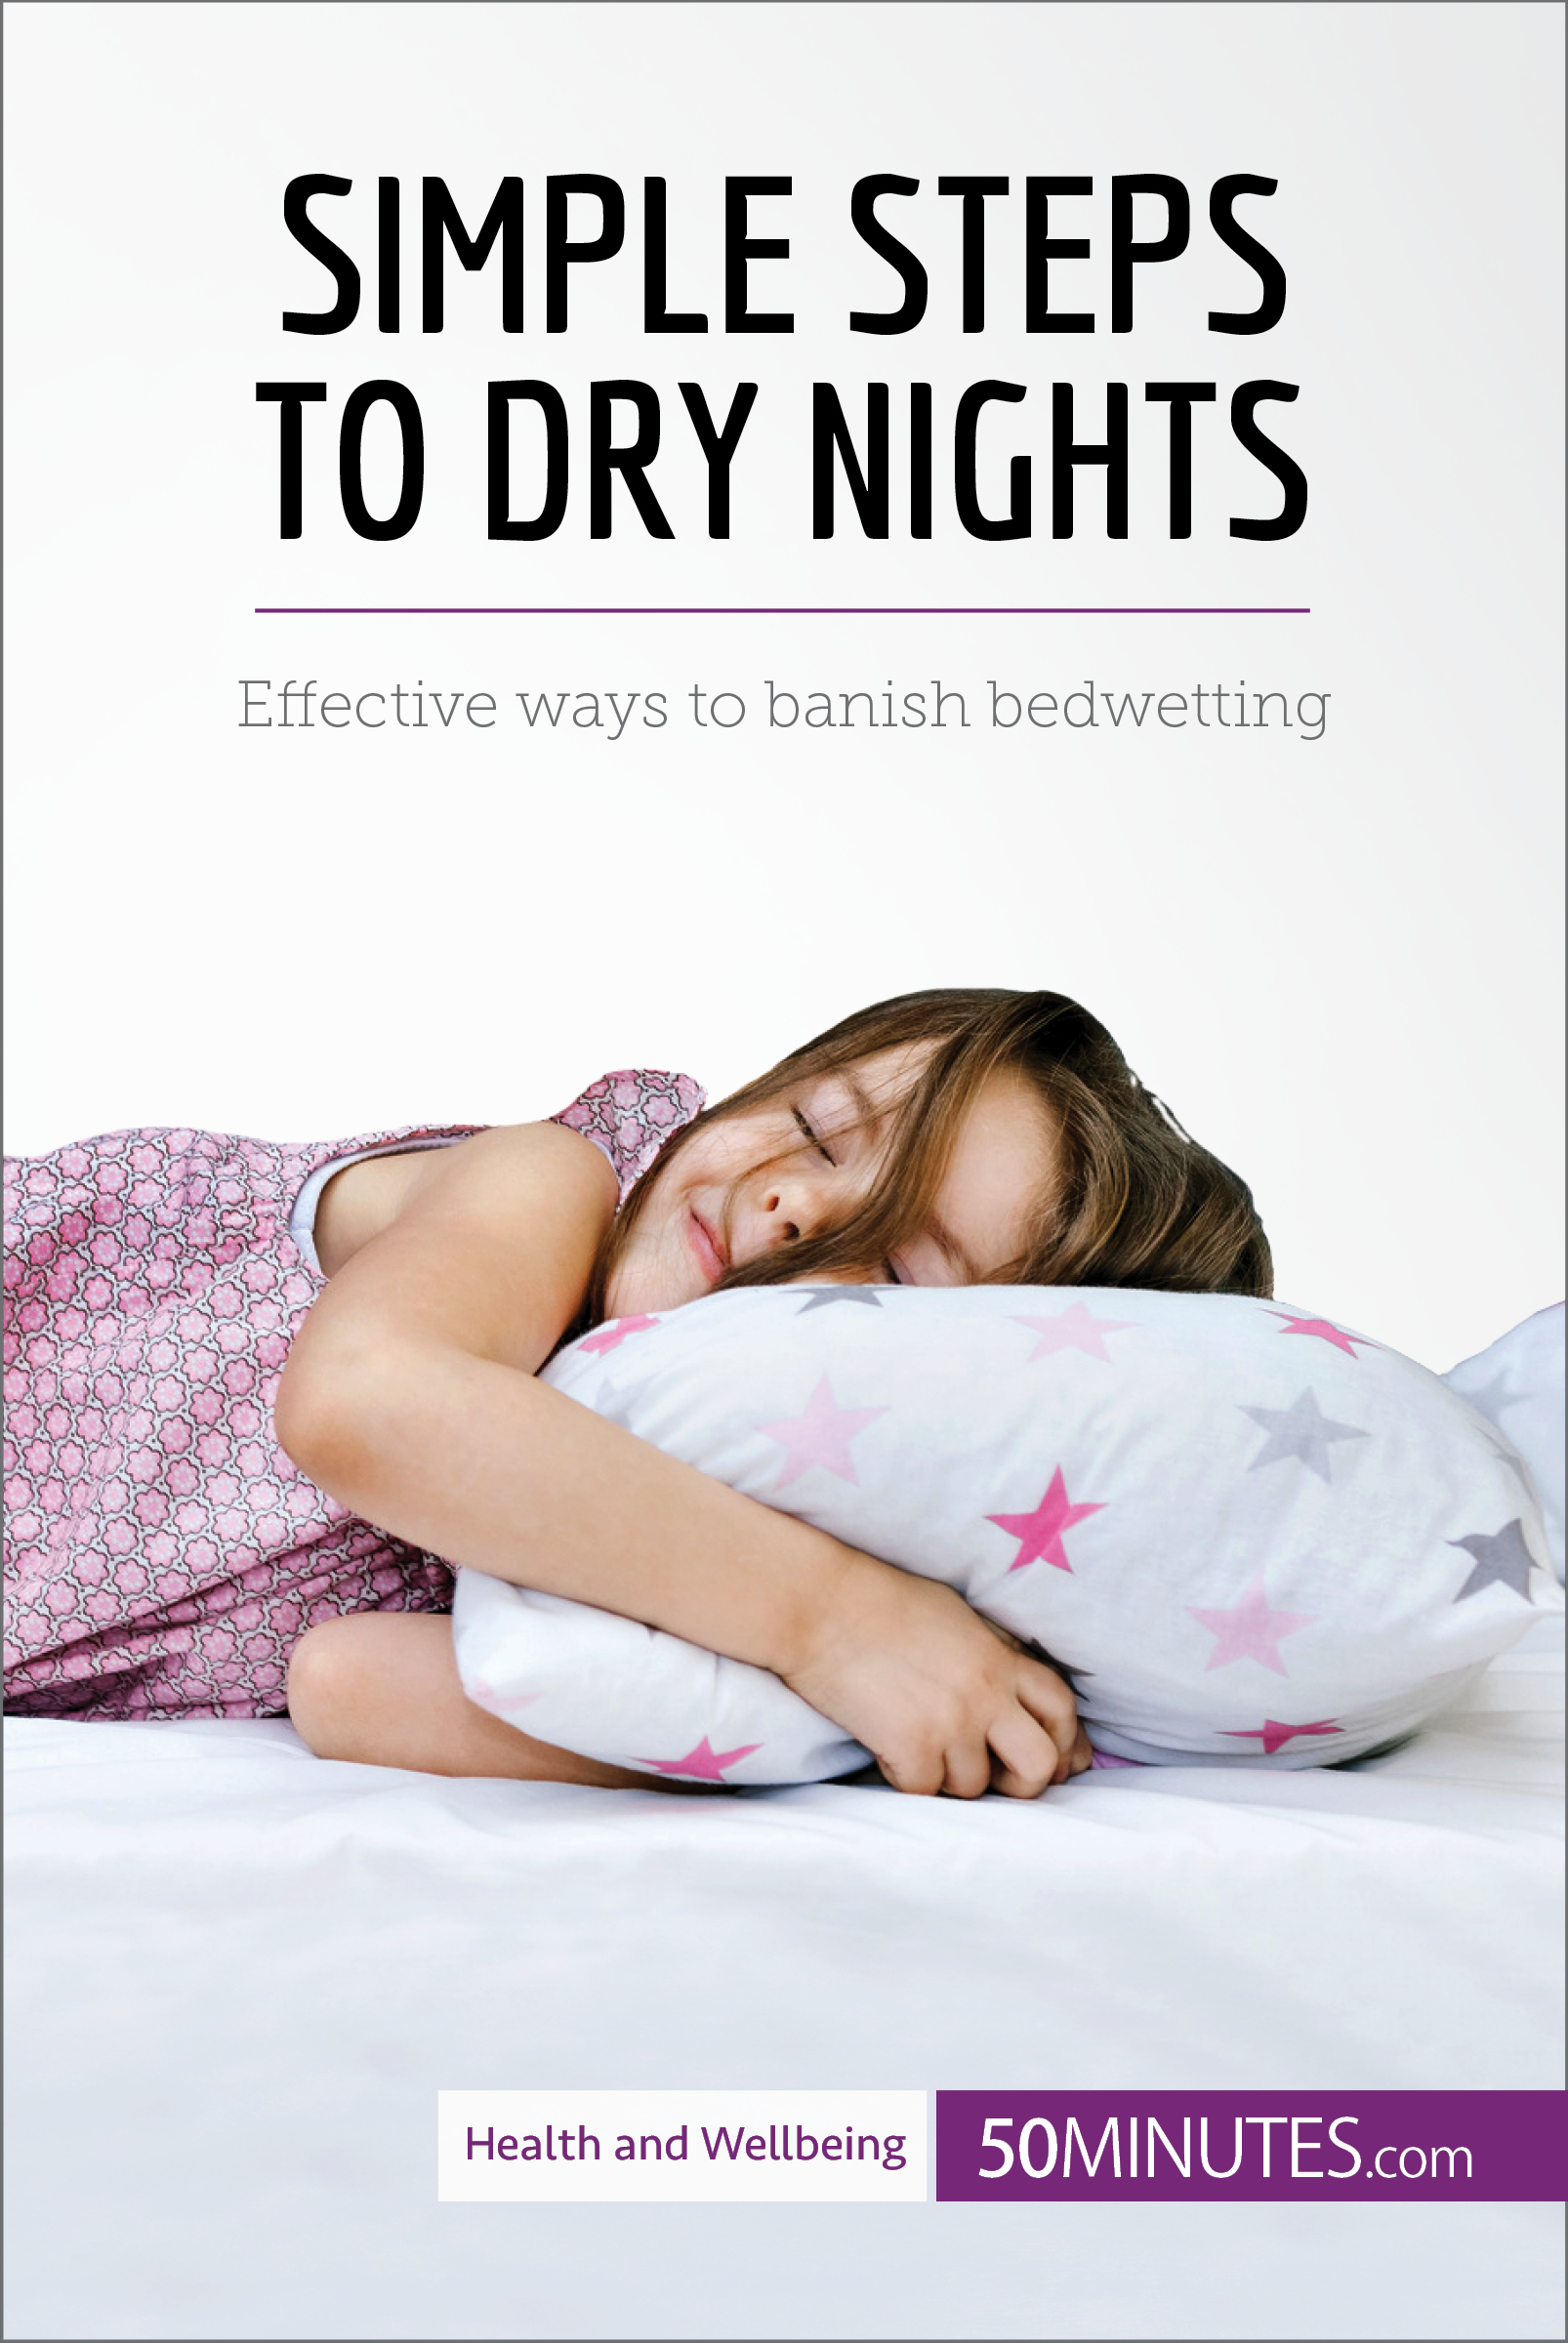 Simple Steps to Dry Nights